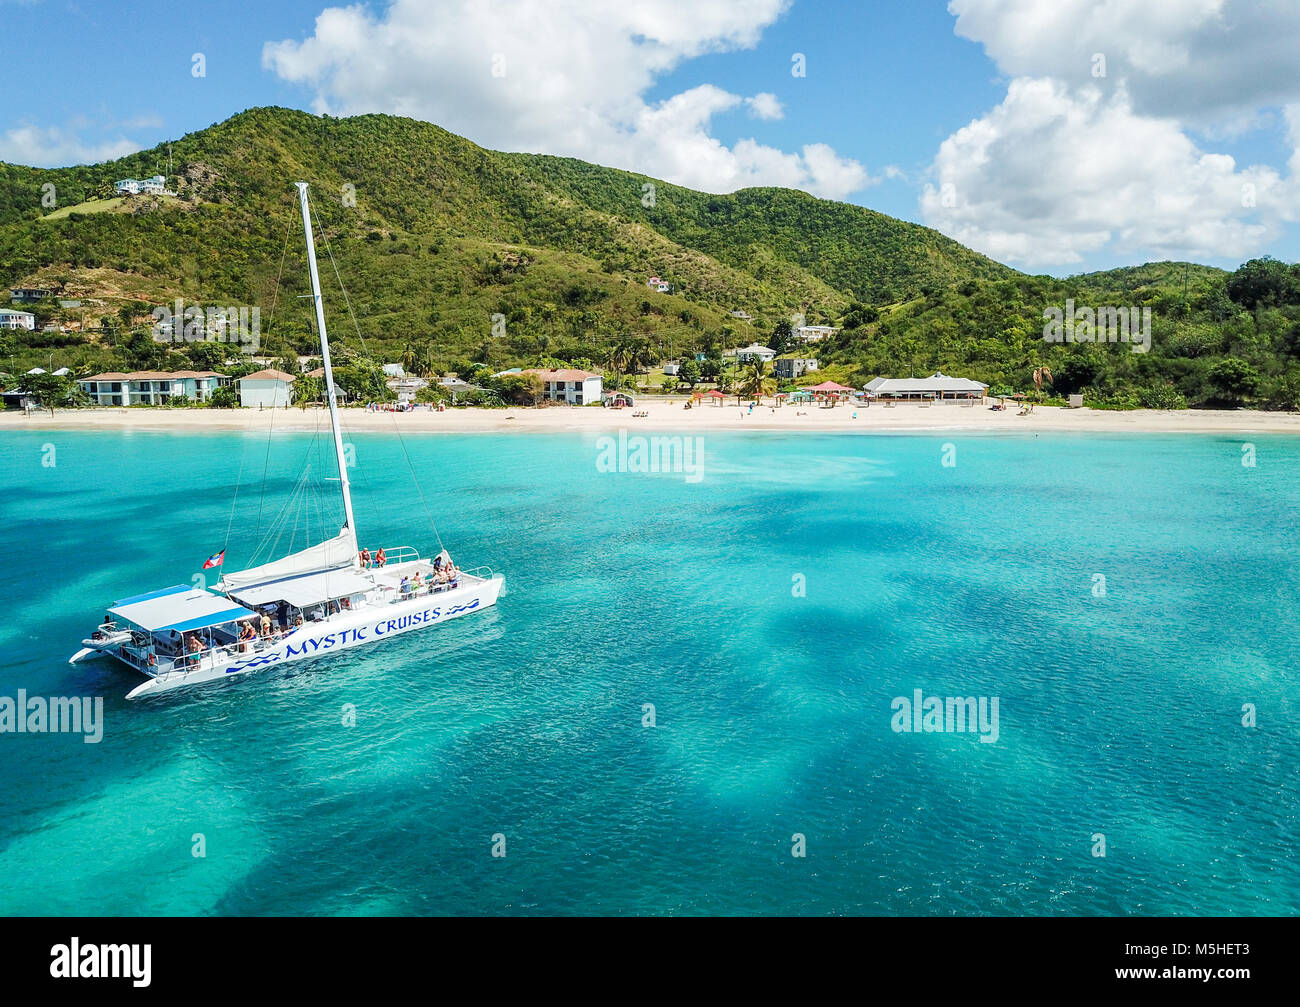 Mystic Cruises tourist Catamaran, Turner's Beach, Picarts Bay - Stock Image